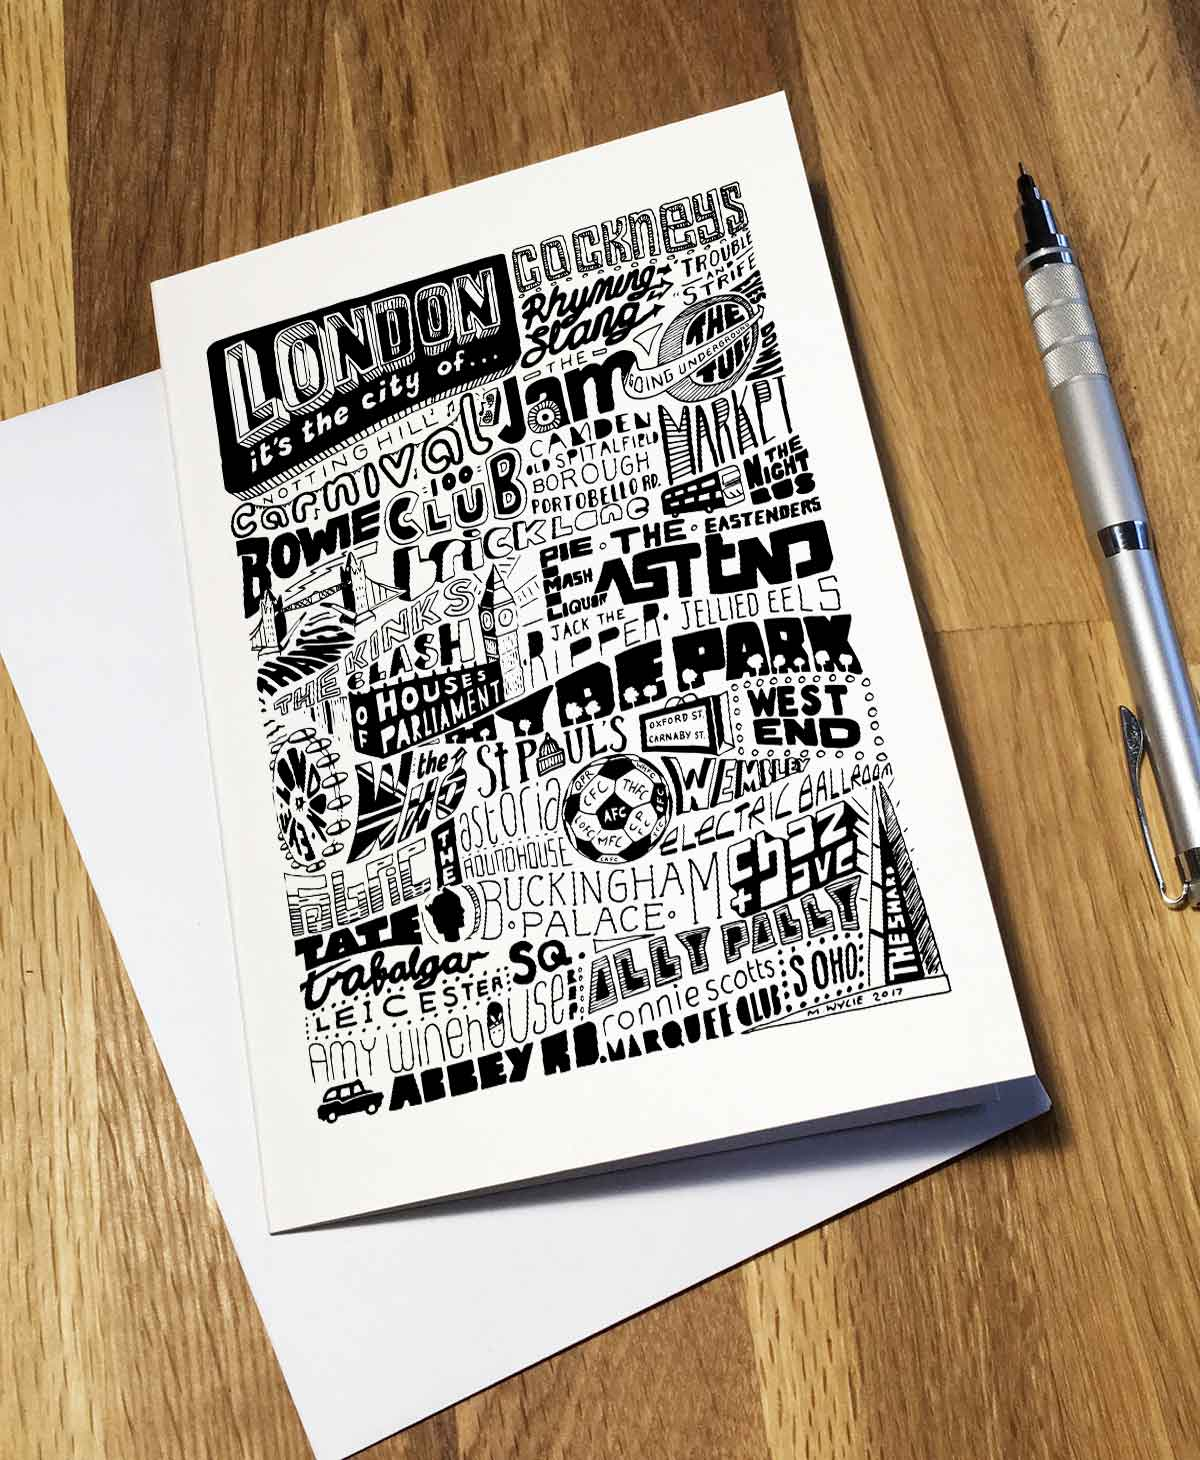 London artwork typography design. City birthday card from Sketchbook Design